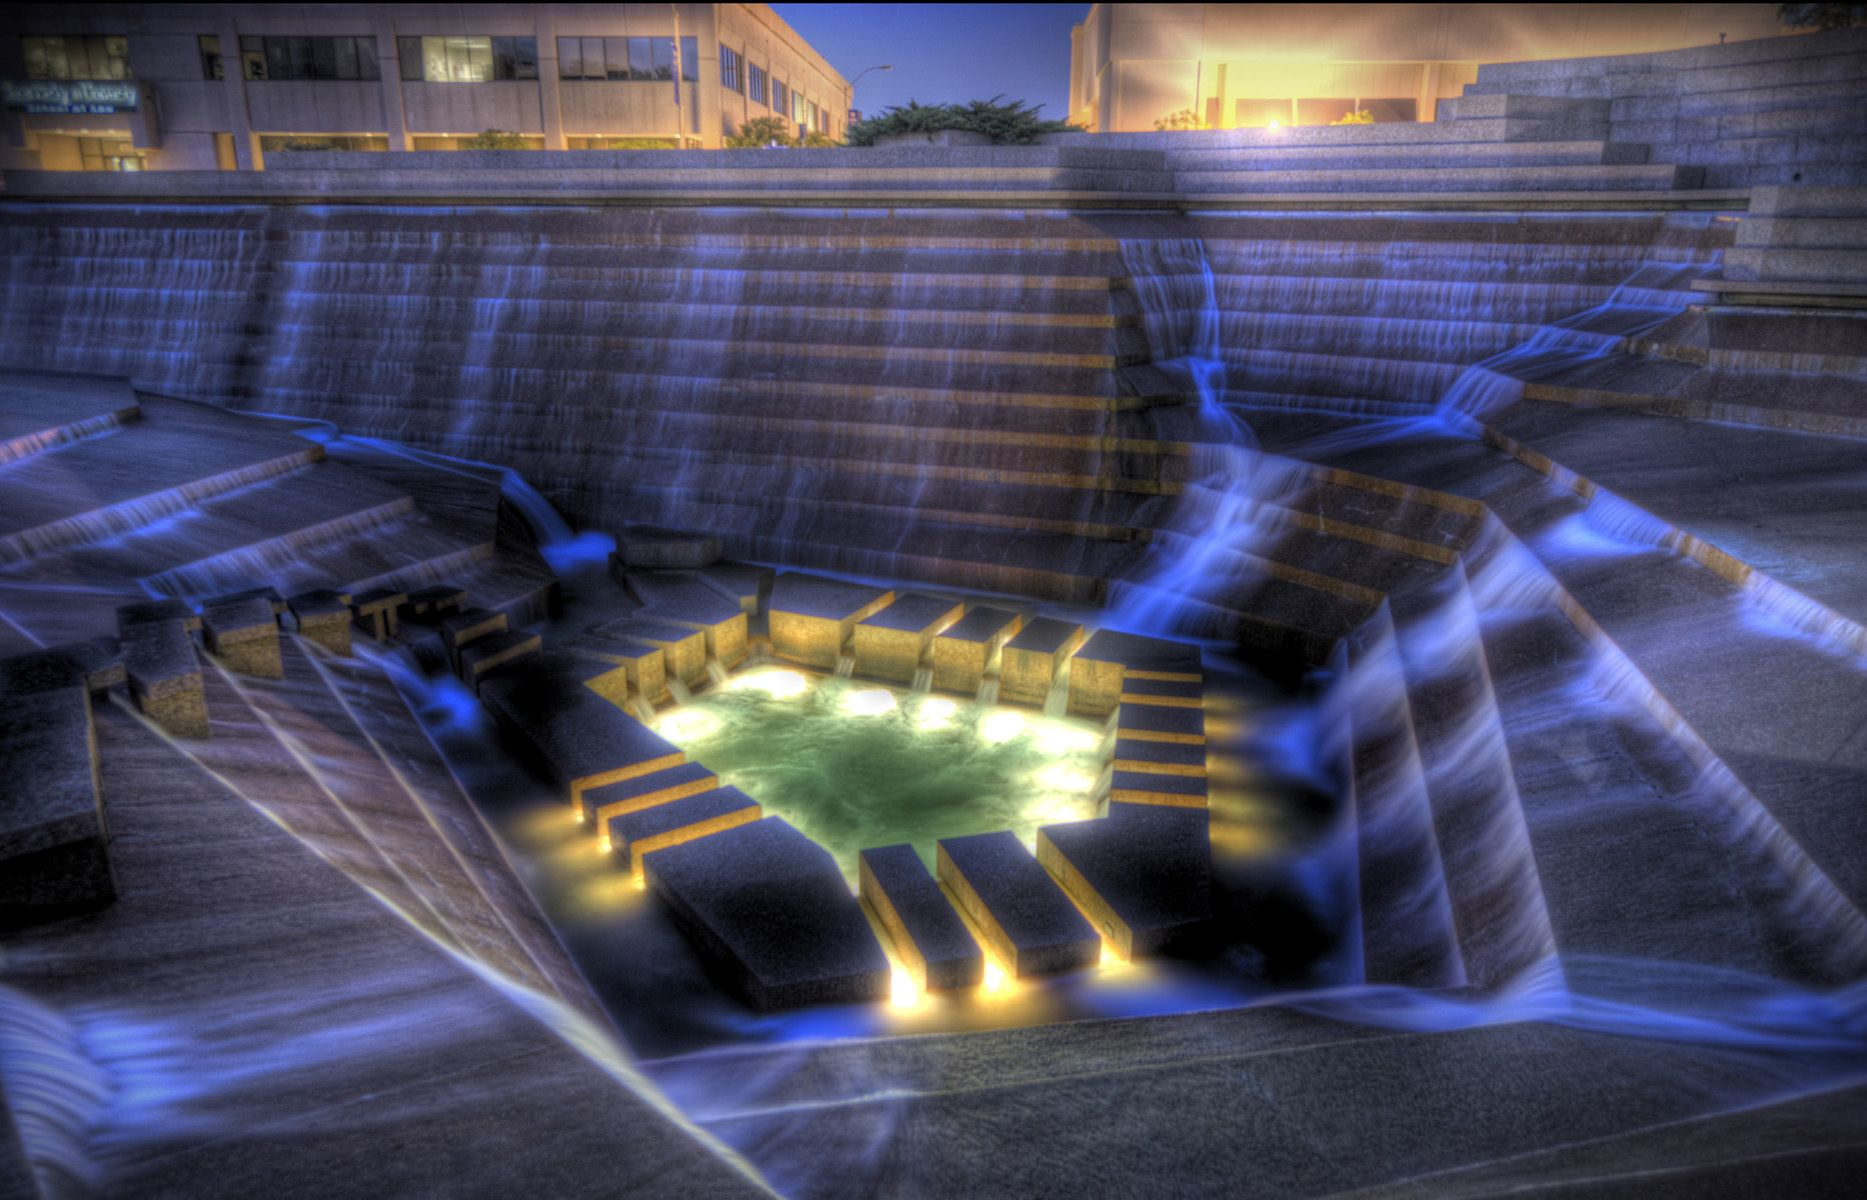 Fort Worth Water Gardens at night If you're looking for